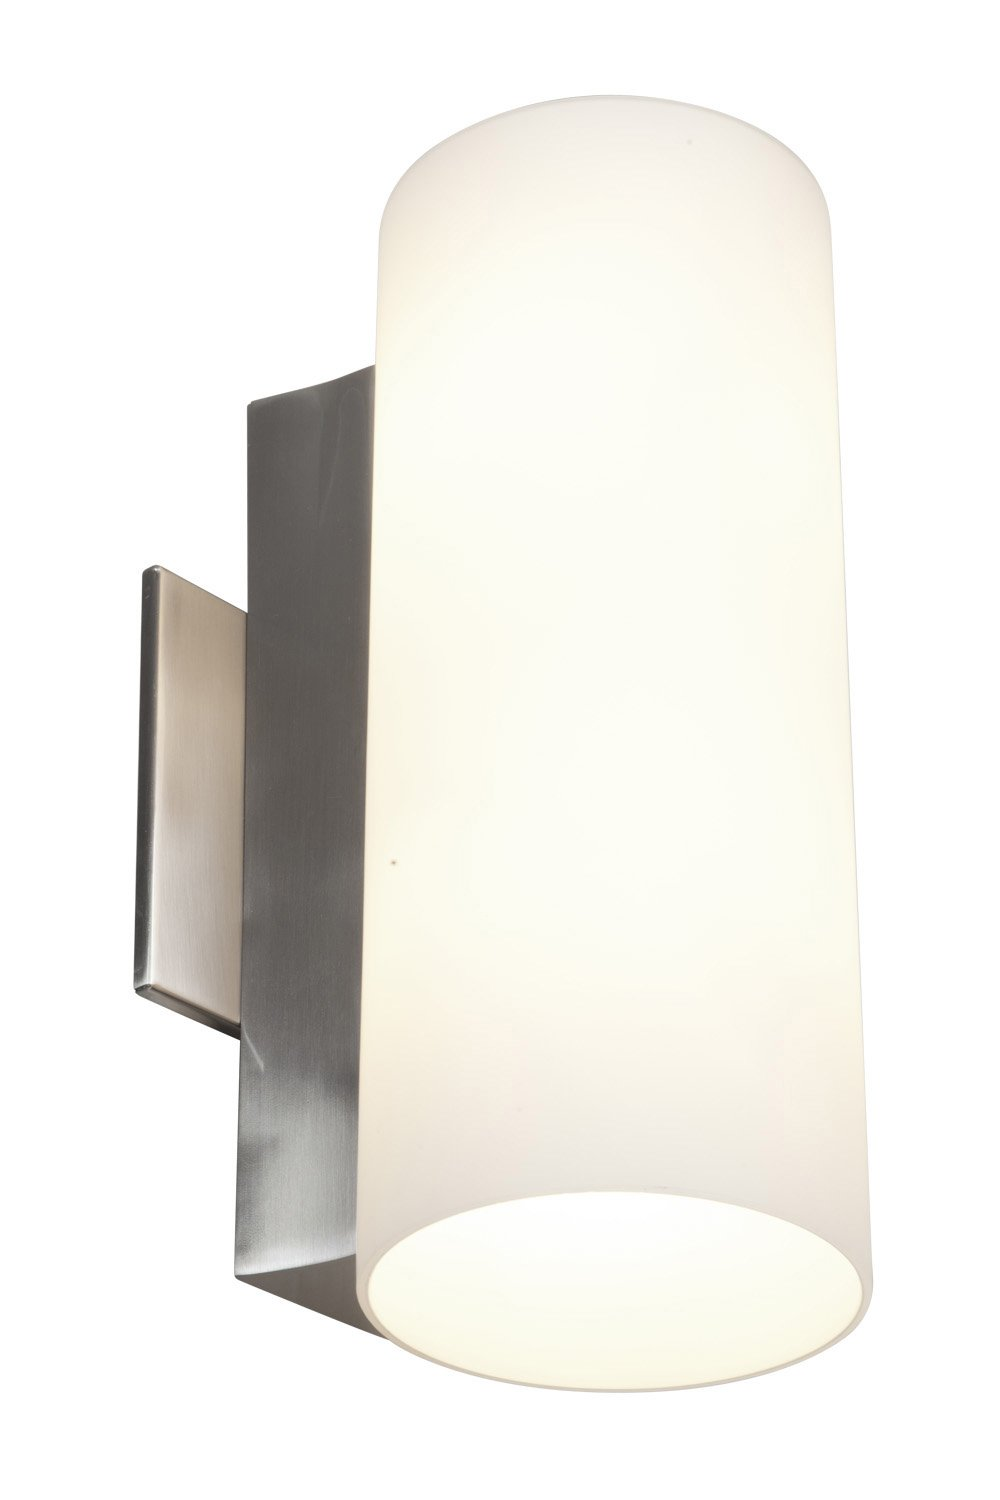 Tabo - Vanity - Brushed Steel Finish - Opal Glass Shade - Vanity ...